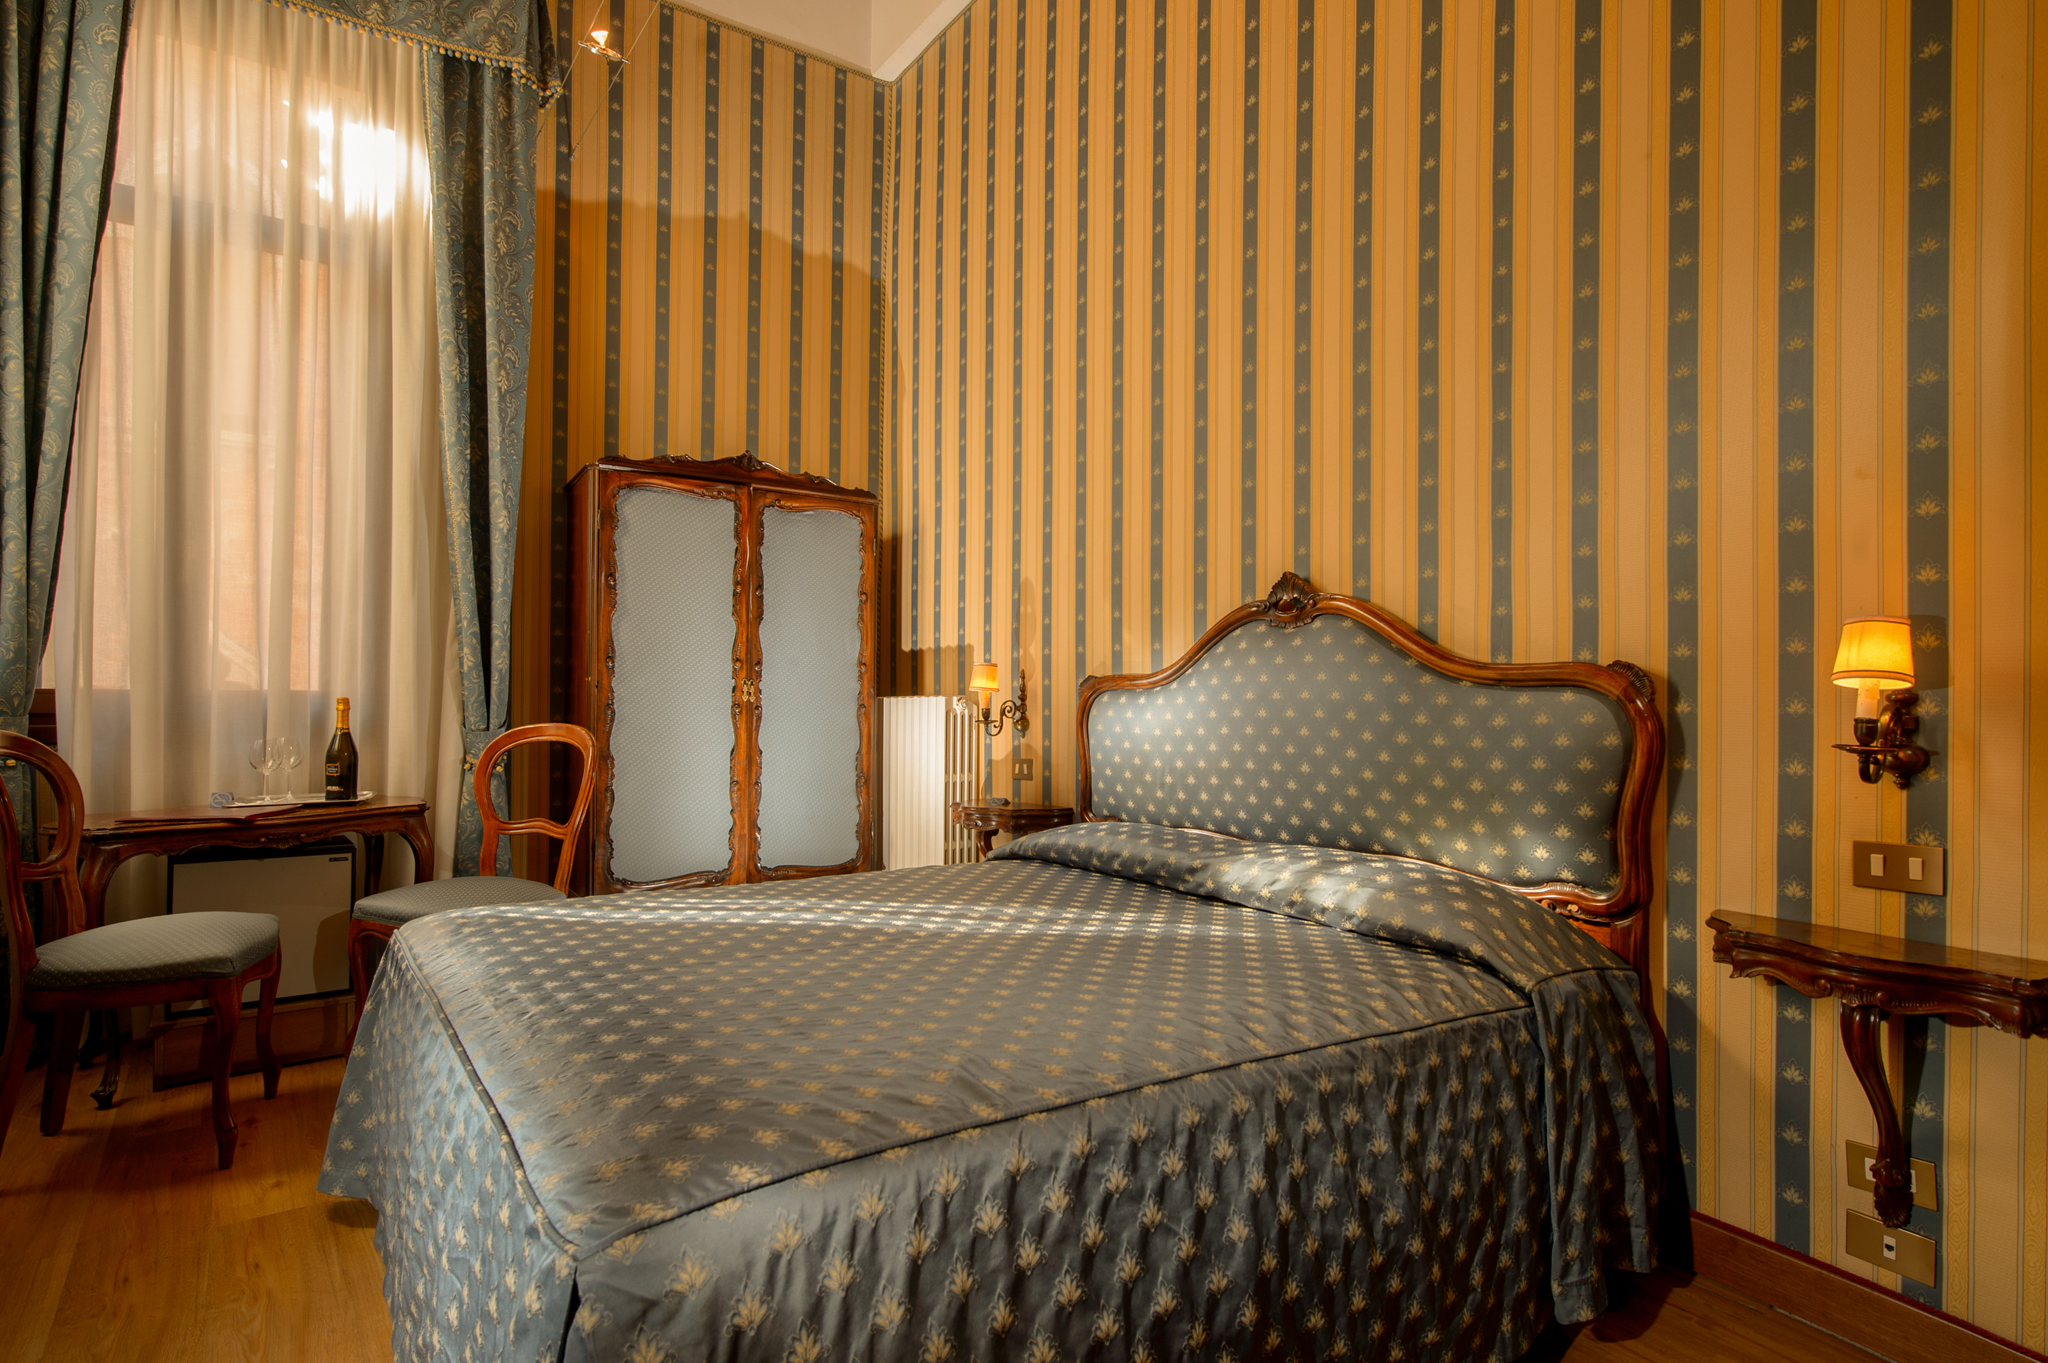 Hotel Centauro | Venice | Some rooms with private terrace